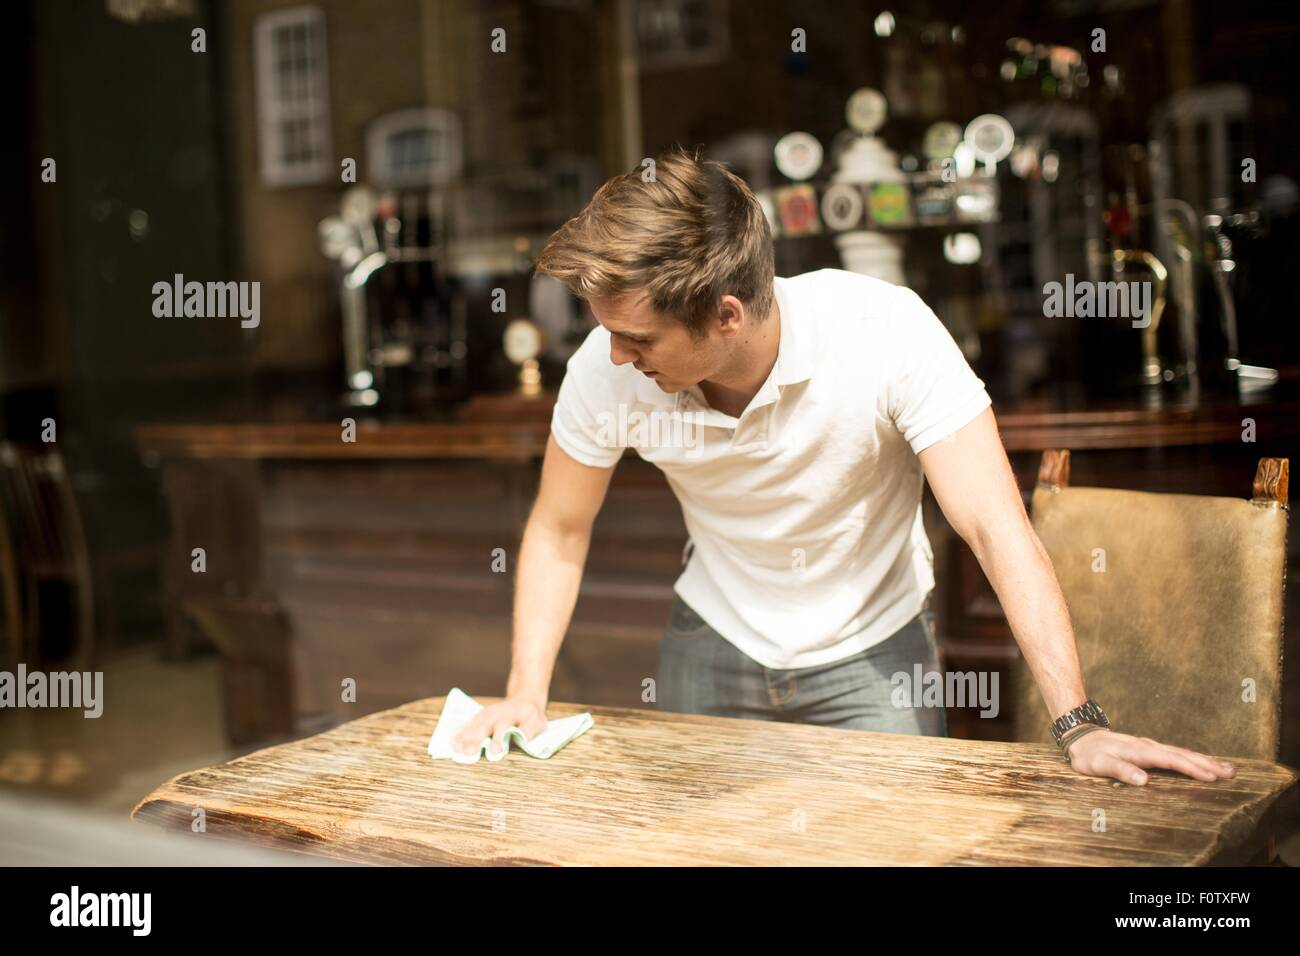 Young man cleaning table in public house - Stock Image